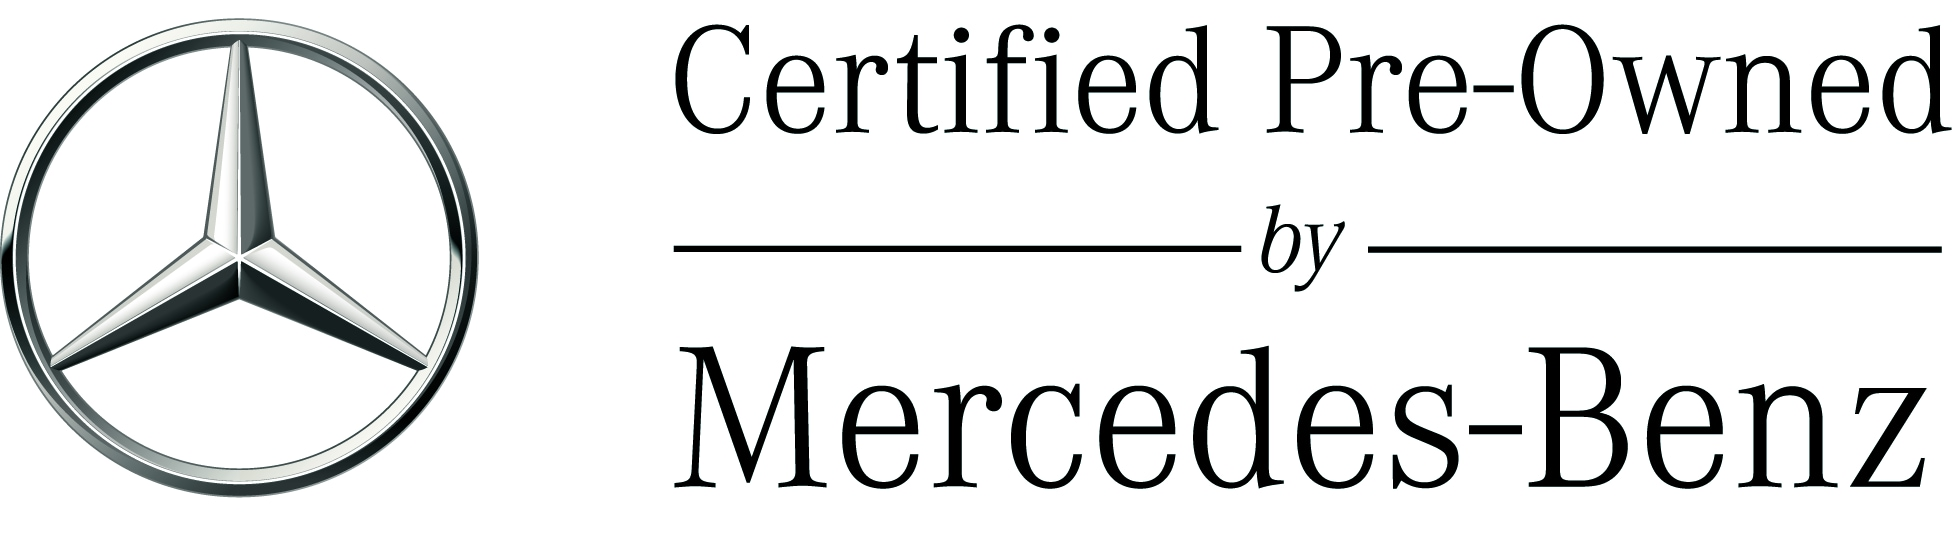 Certified Pre Owned Mercedes >> What Is Certified Pre Owned Find Your Certified Mercedes Benz Near